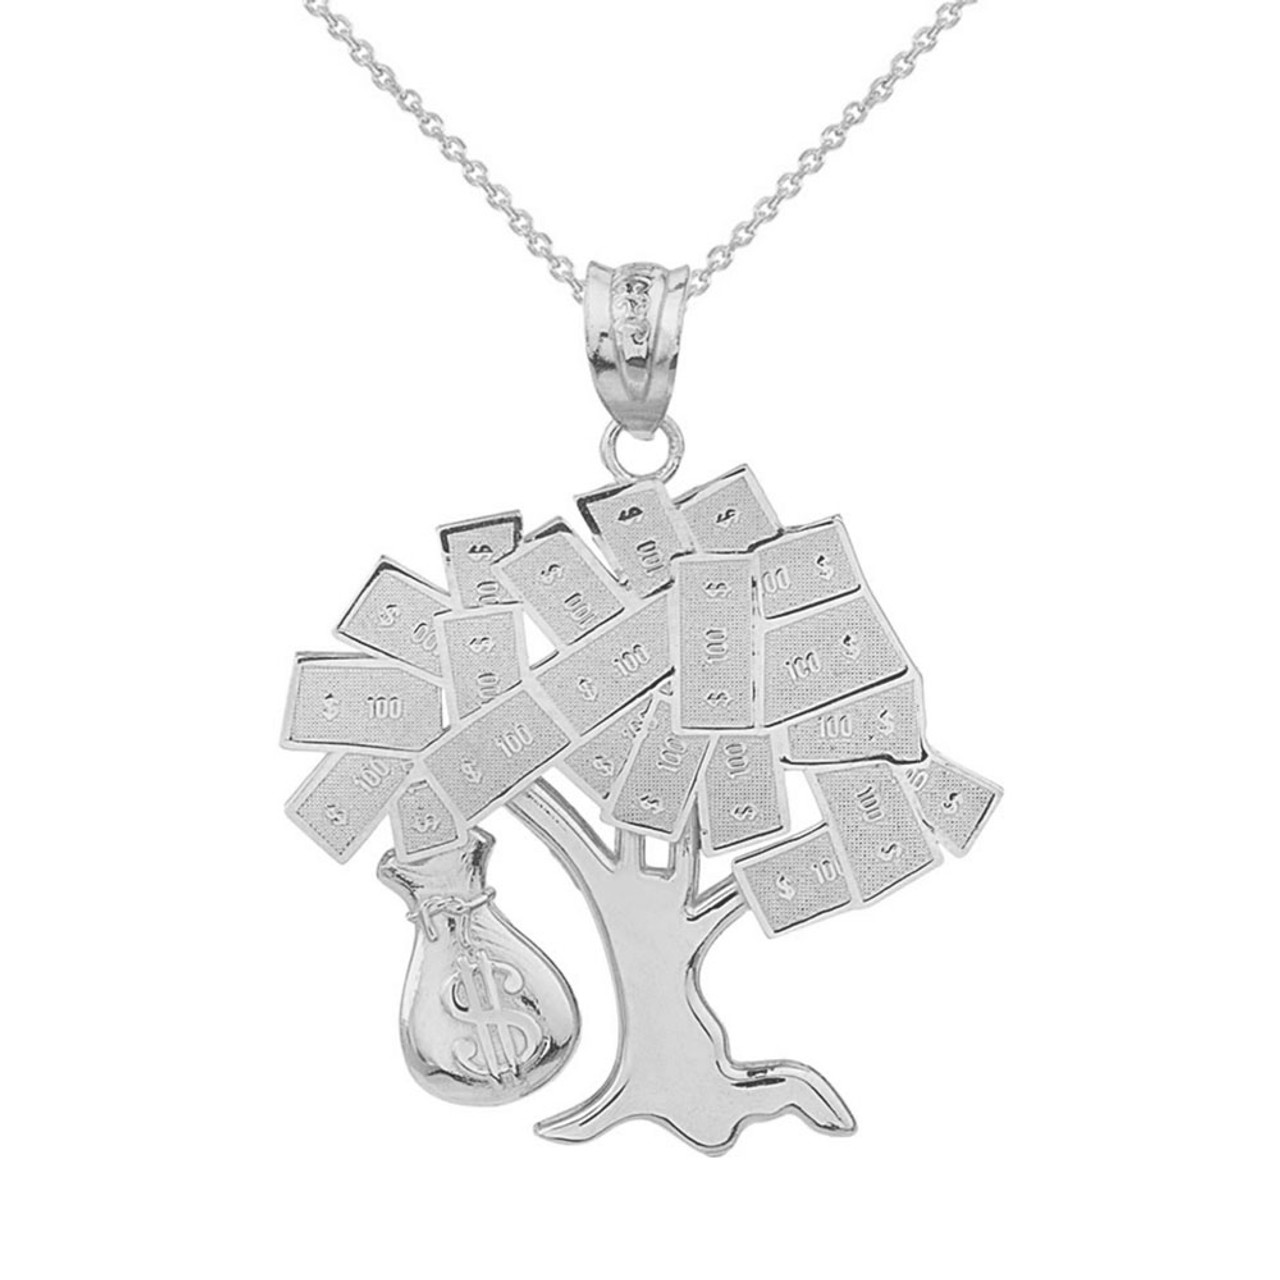 Currency Sterling Silver Pendant Length 13 mm.